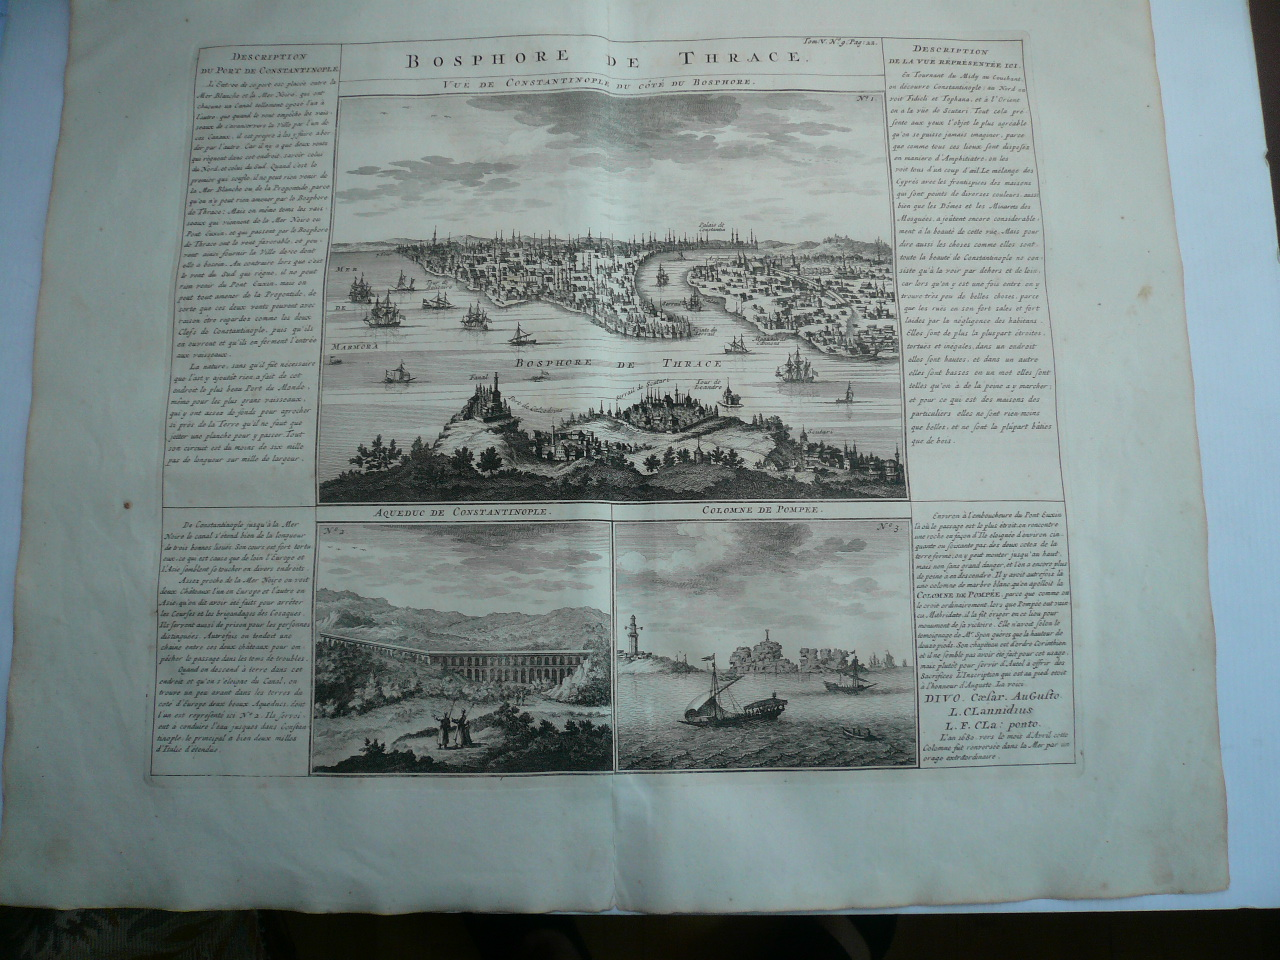 Bosphore de Thrace, anno 1719, Chatelain Henri, copperengraving